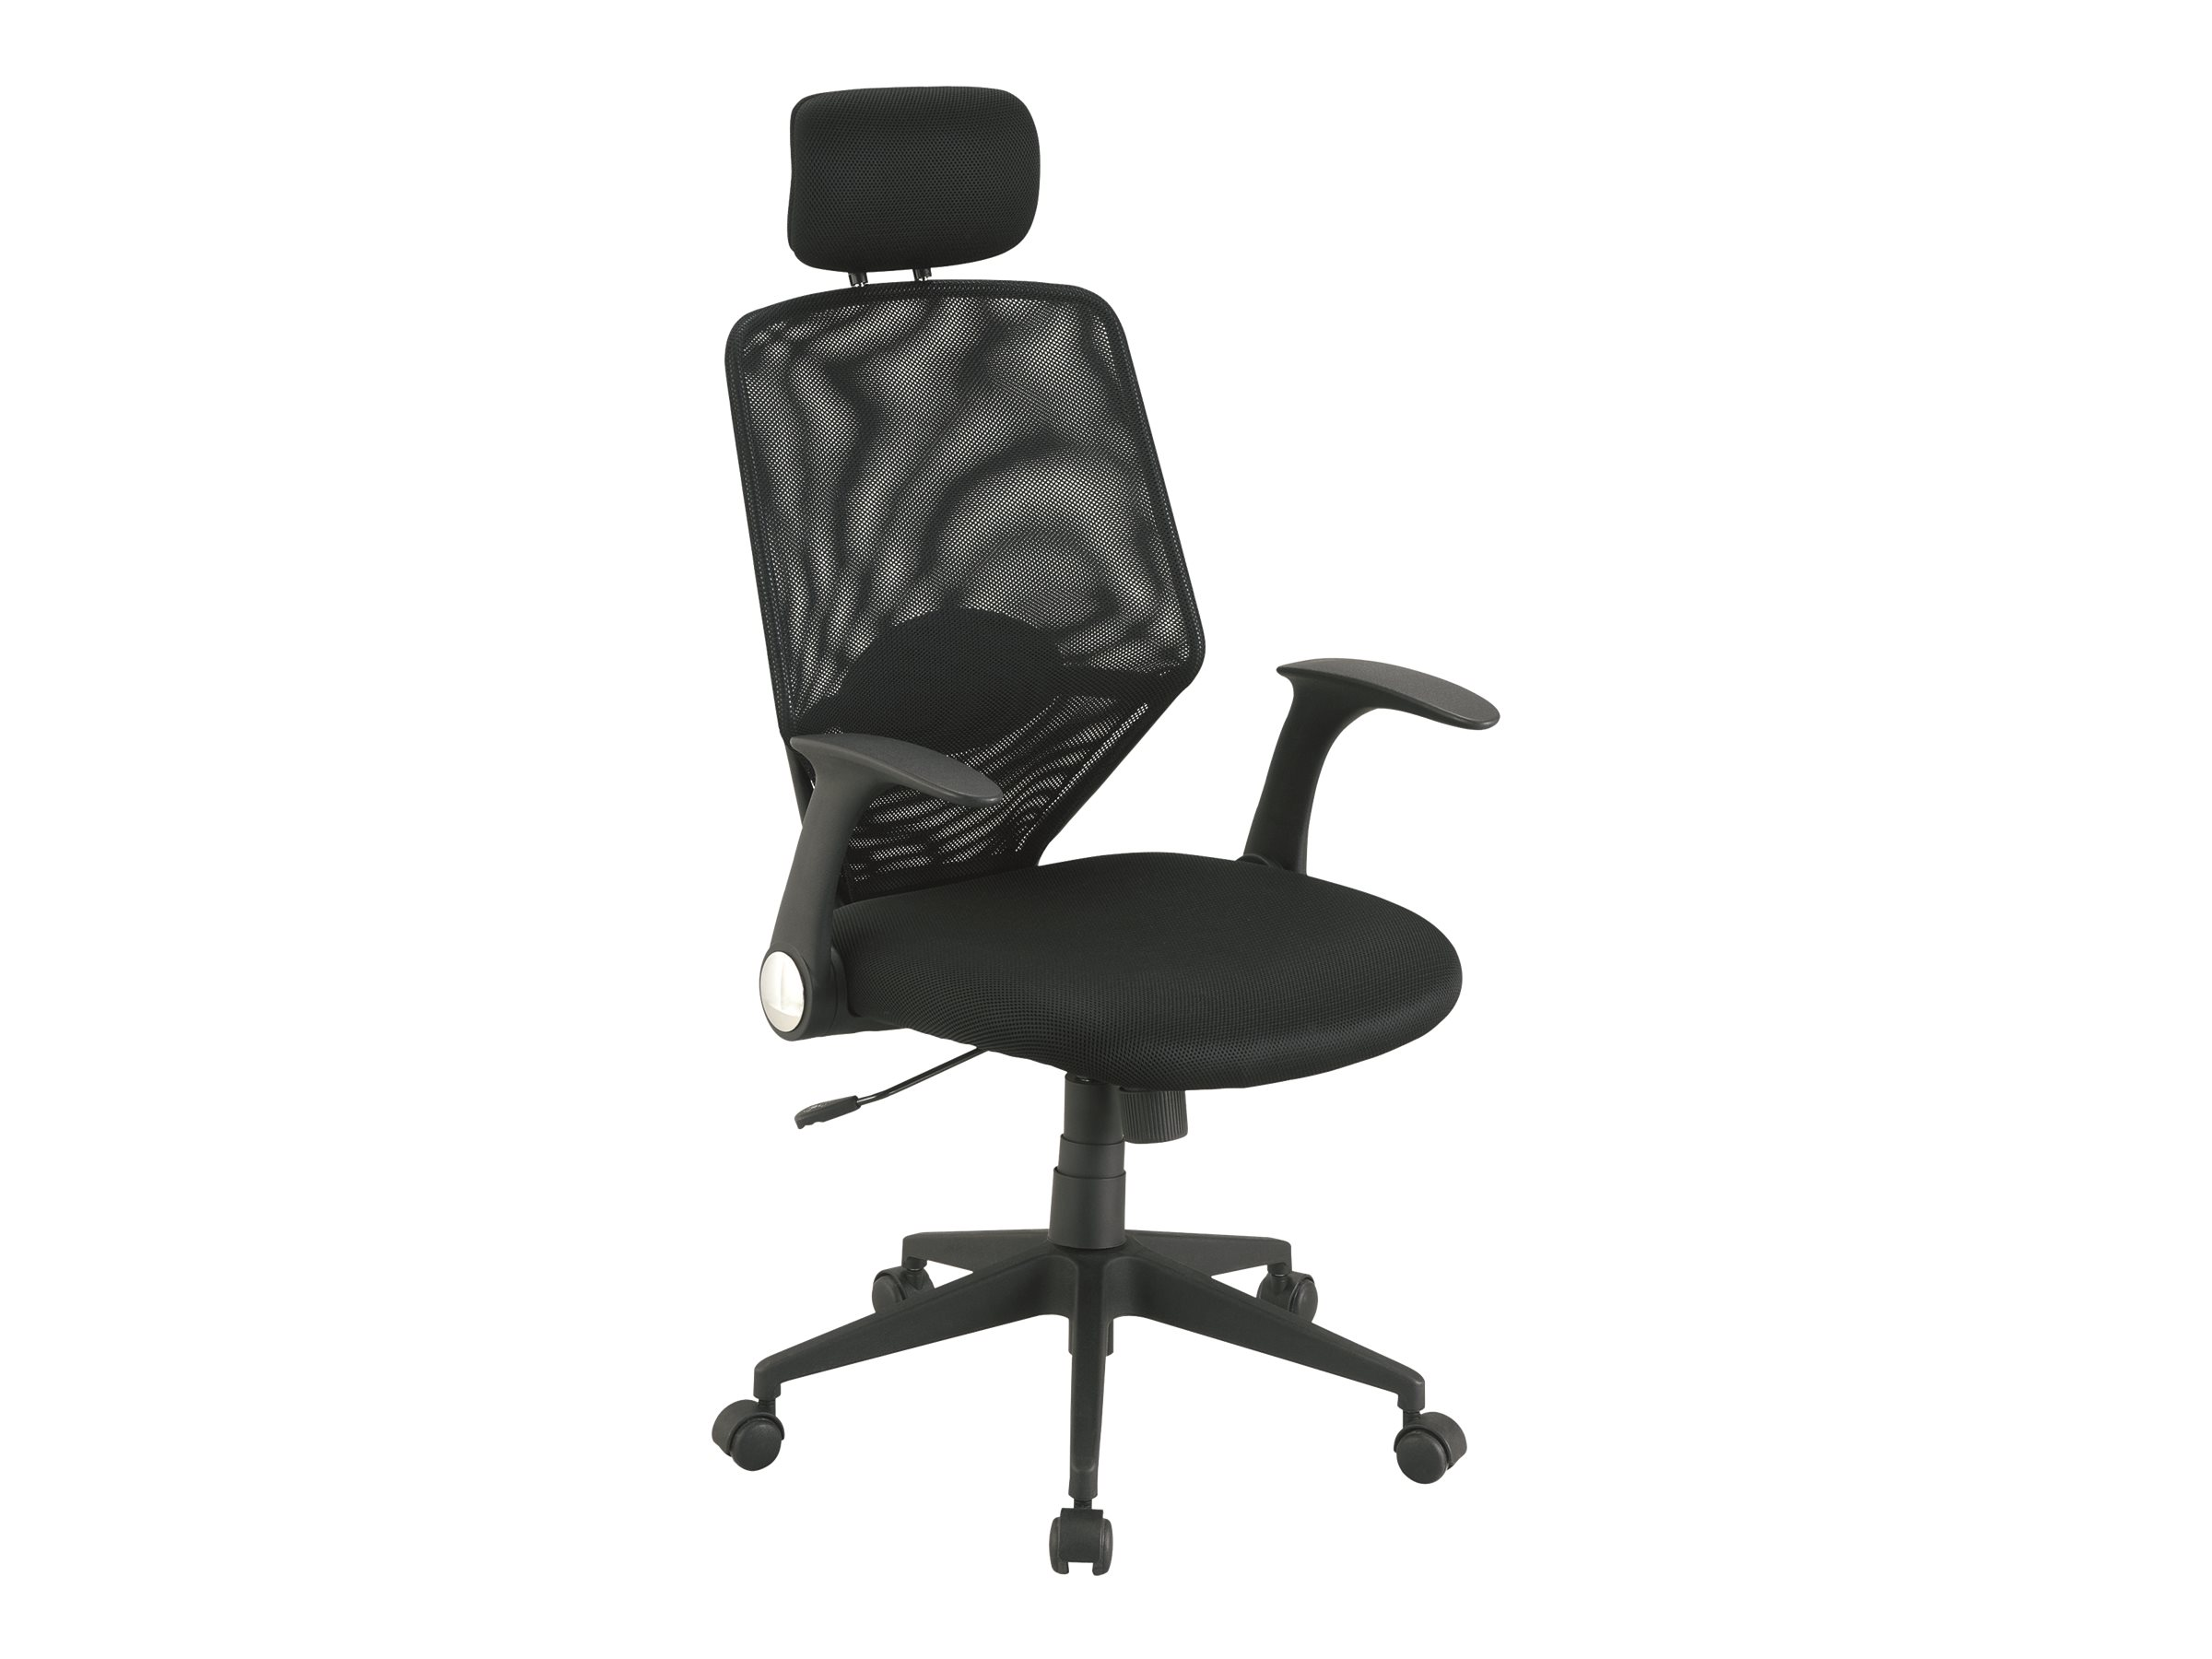 Demeyere galleon chaise usage moyen - Fauteuil de bureau ergonomique ultimate v2 plus ...